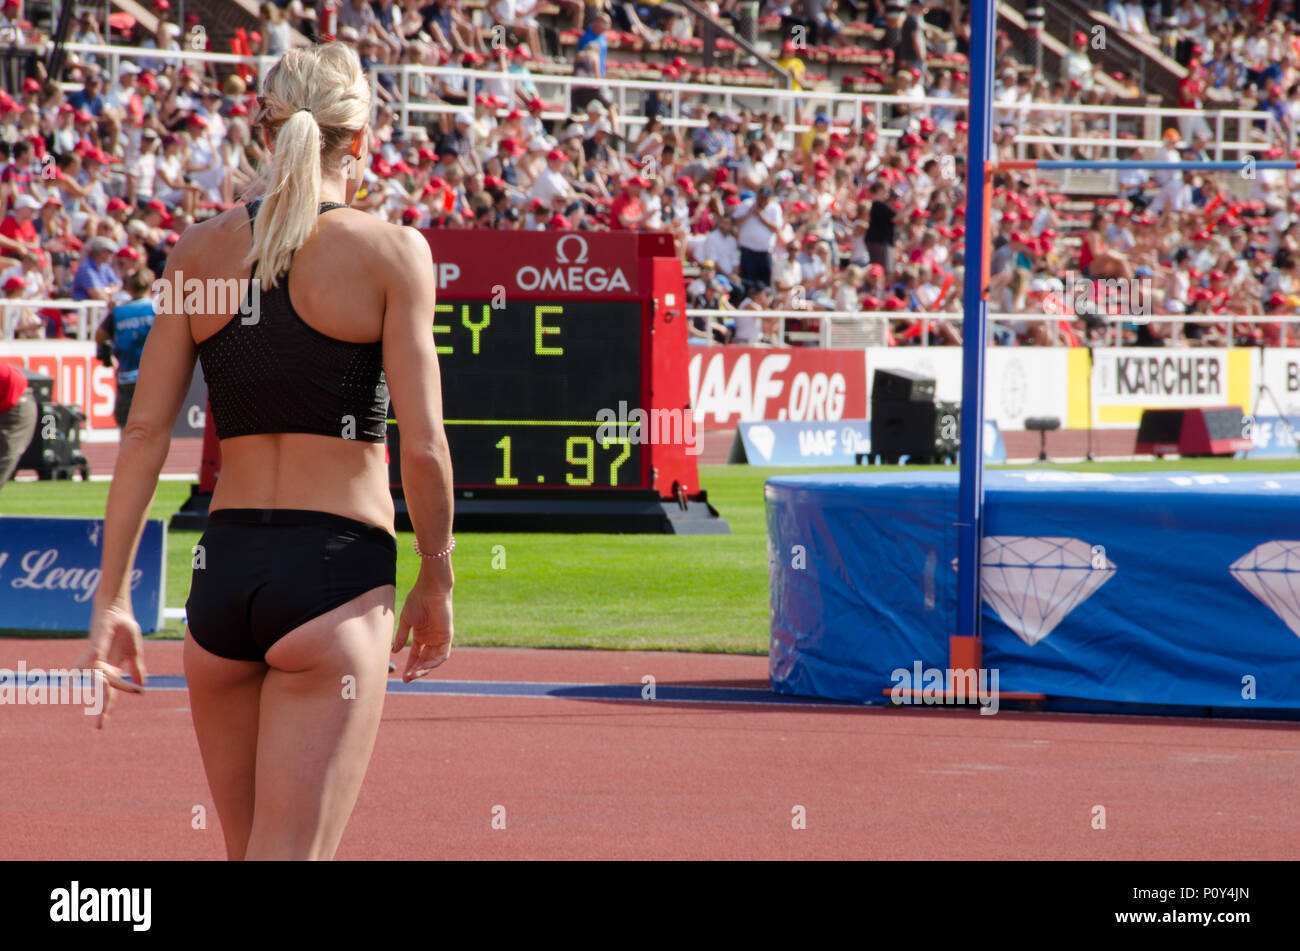 Stockholm, Sweden - 10 June 2018. High jump women on the Diamond league- competition at Stockholm Stadium. Erika Kinsey from Sweden preparing for her jump. Credit: Jari Juntunen/Alamy Live News - Stock Image